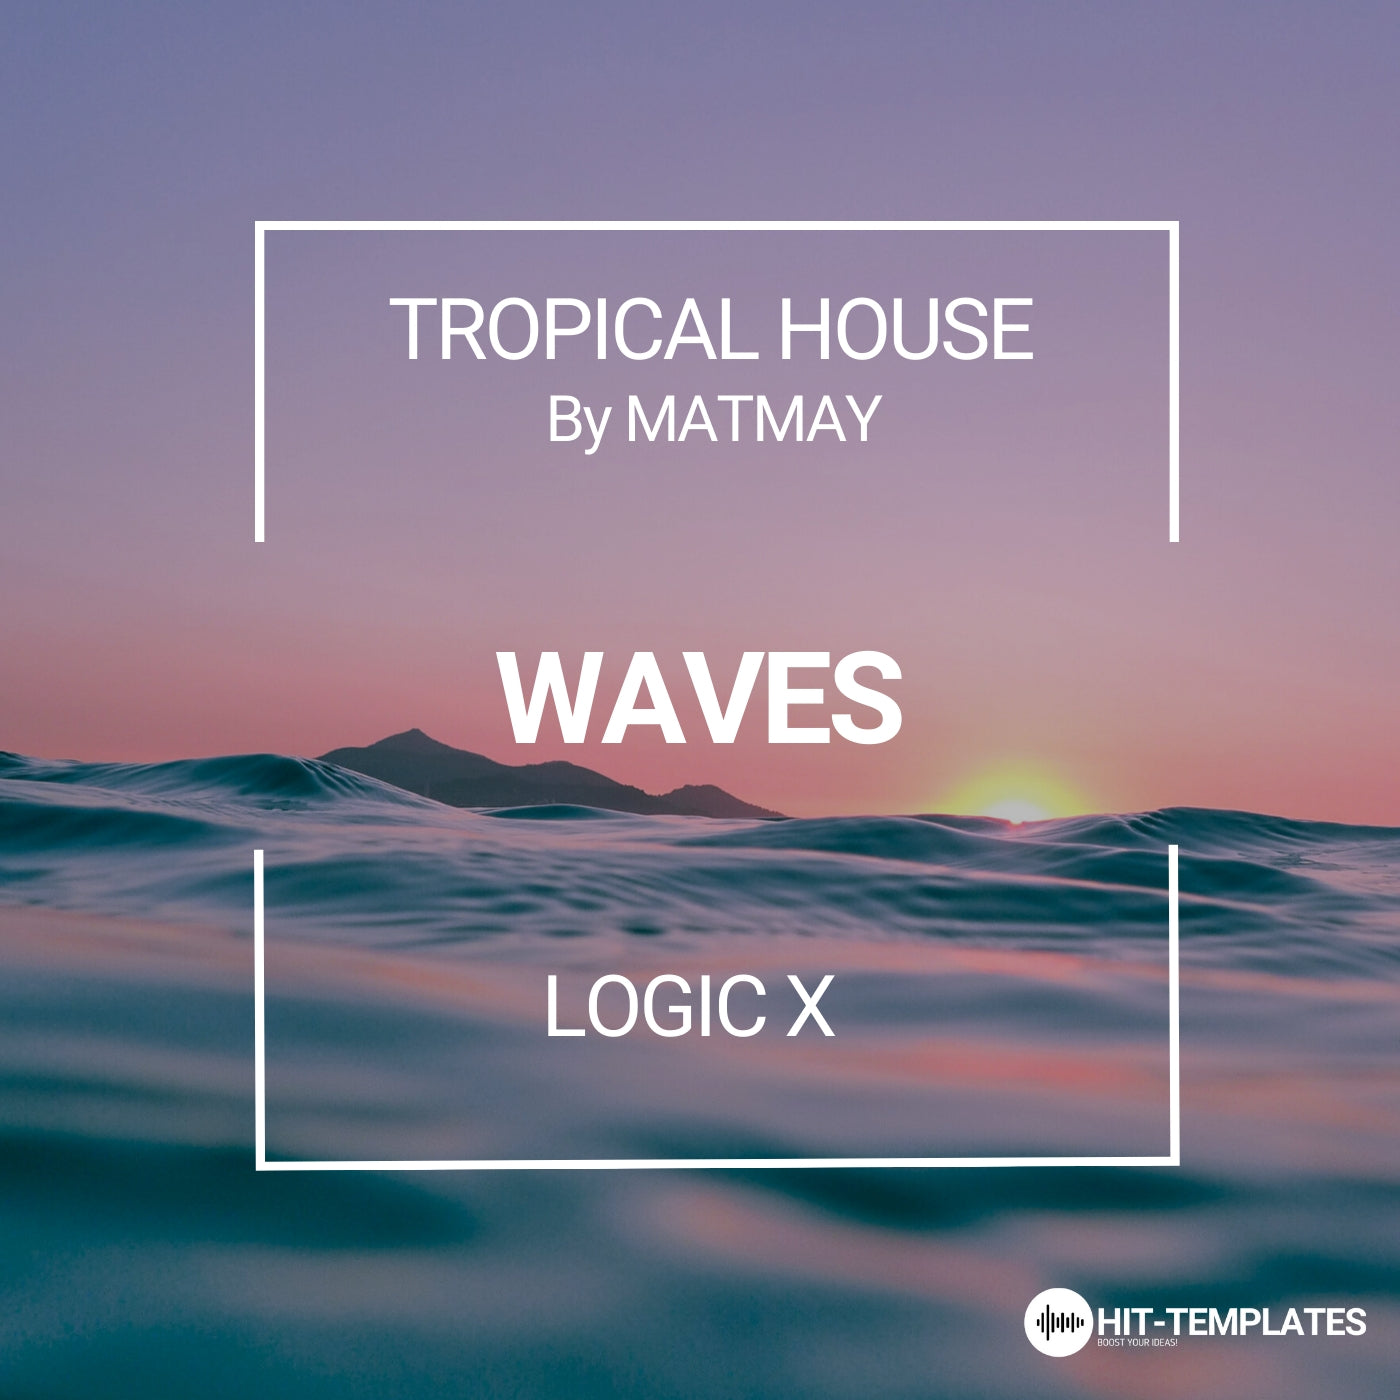 WAVES - TROPICAL HOUSE